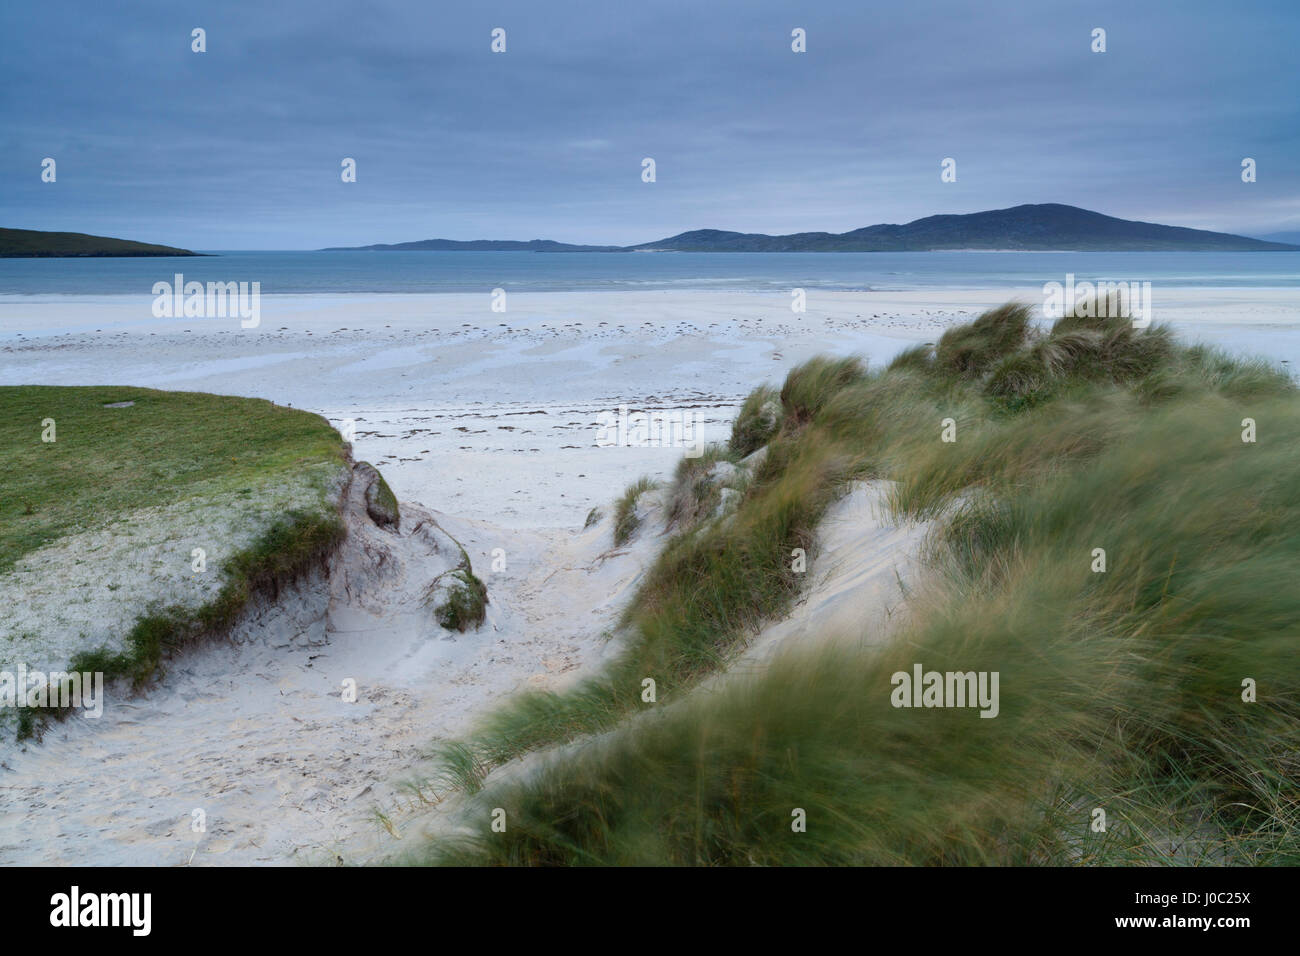 Looking across the dunes and beach towards Taransay from Seilebost, Isle of Harris, Outer Hebrides, Scotland, UK - Stock Image